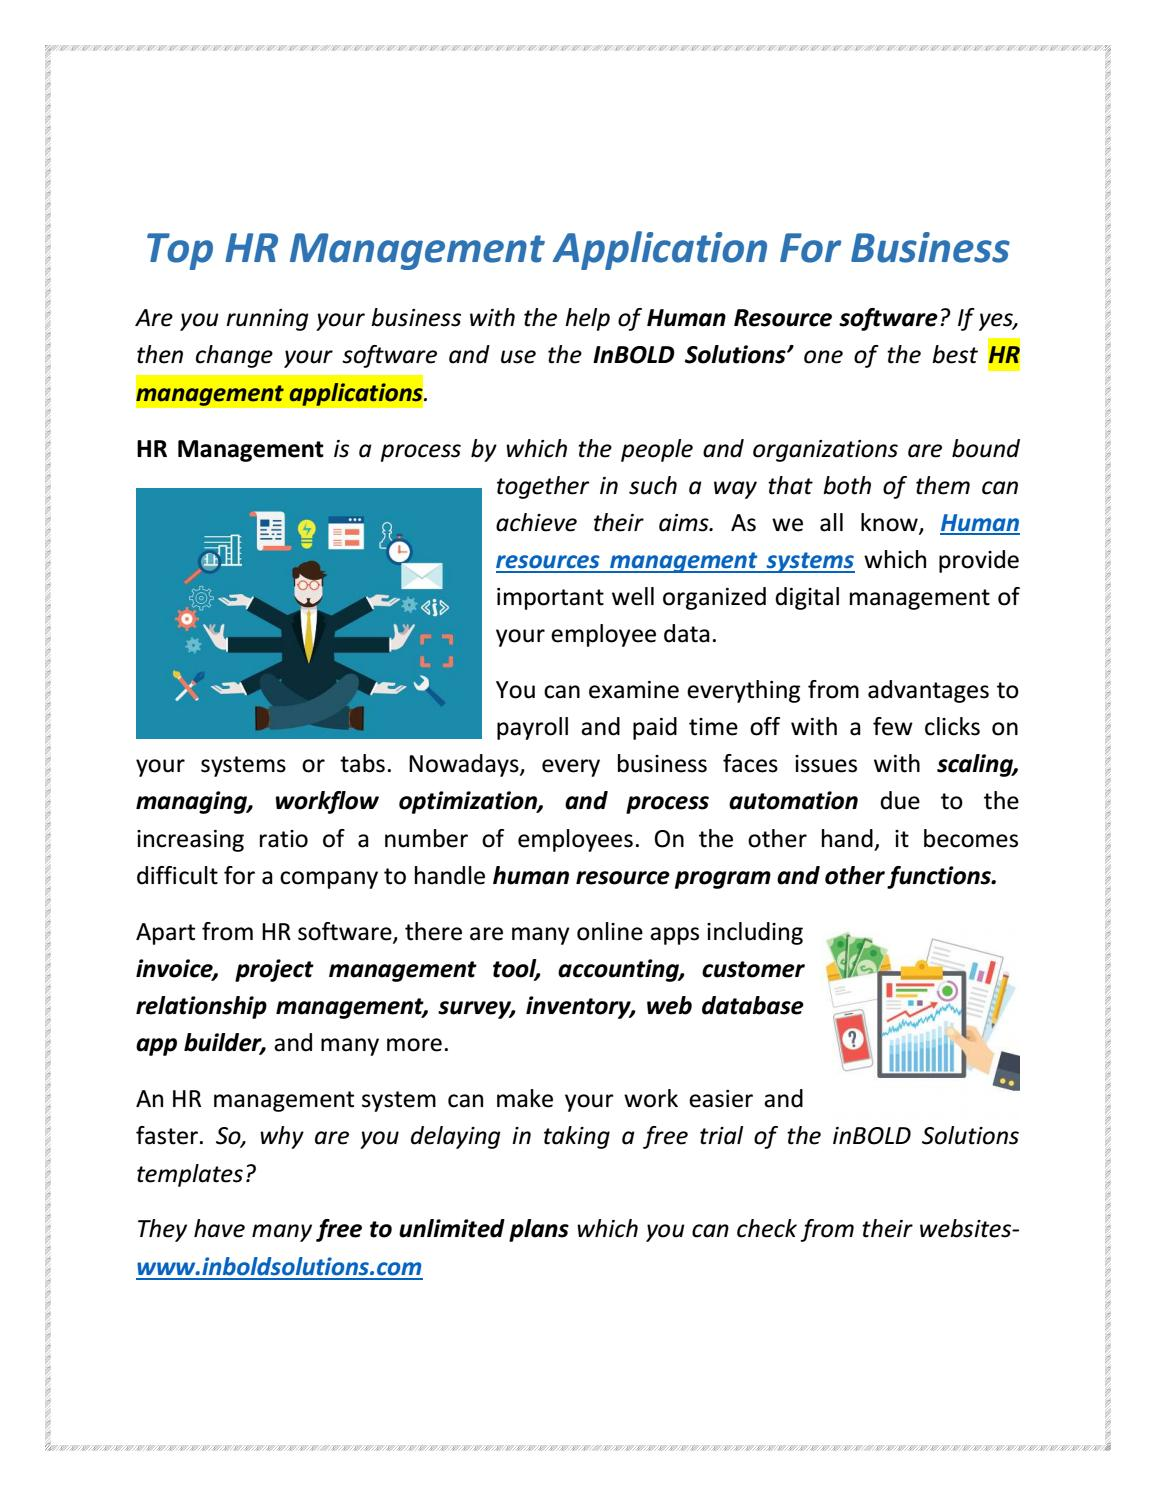 Top HR Management Application For Business by Inbold